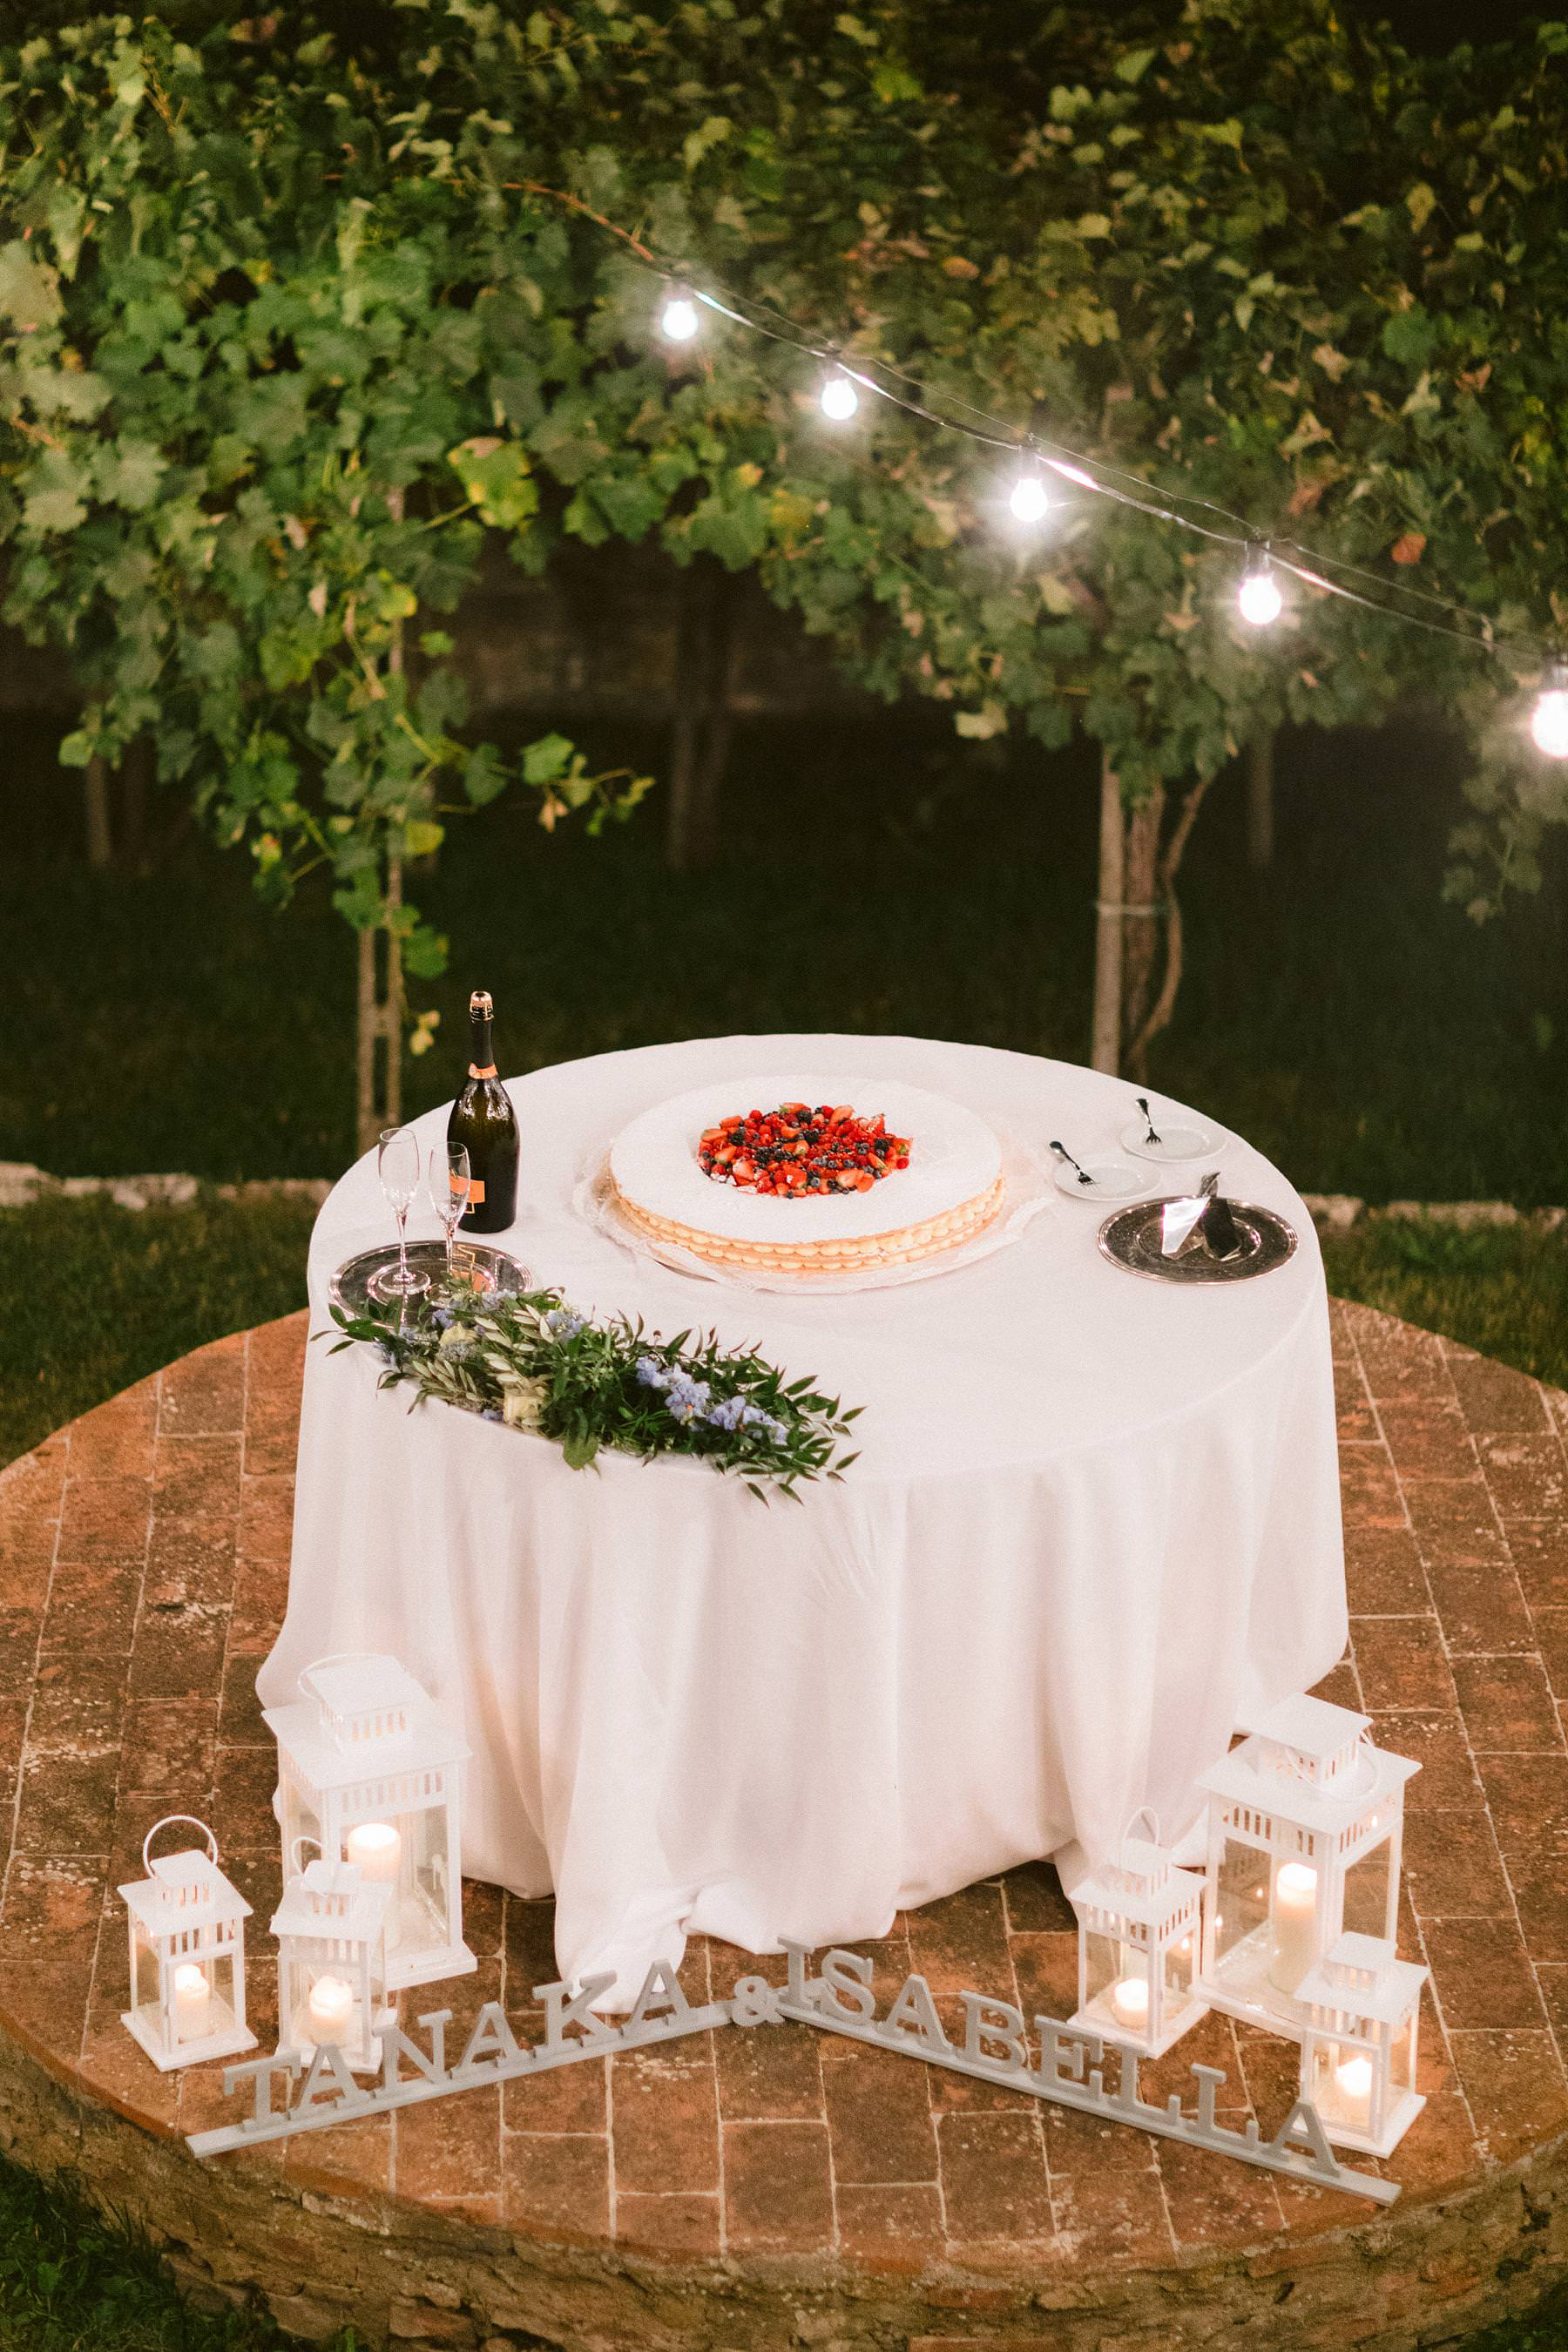 Lovely and delicious cake decor surrounded by lights and sparkles for bride Isabella and groom Tanaka at Montelucci Country Resort in Tuscany countryside